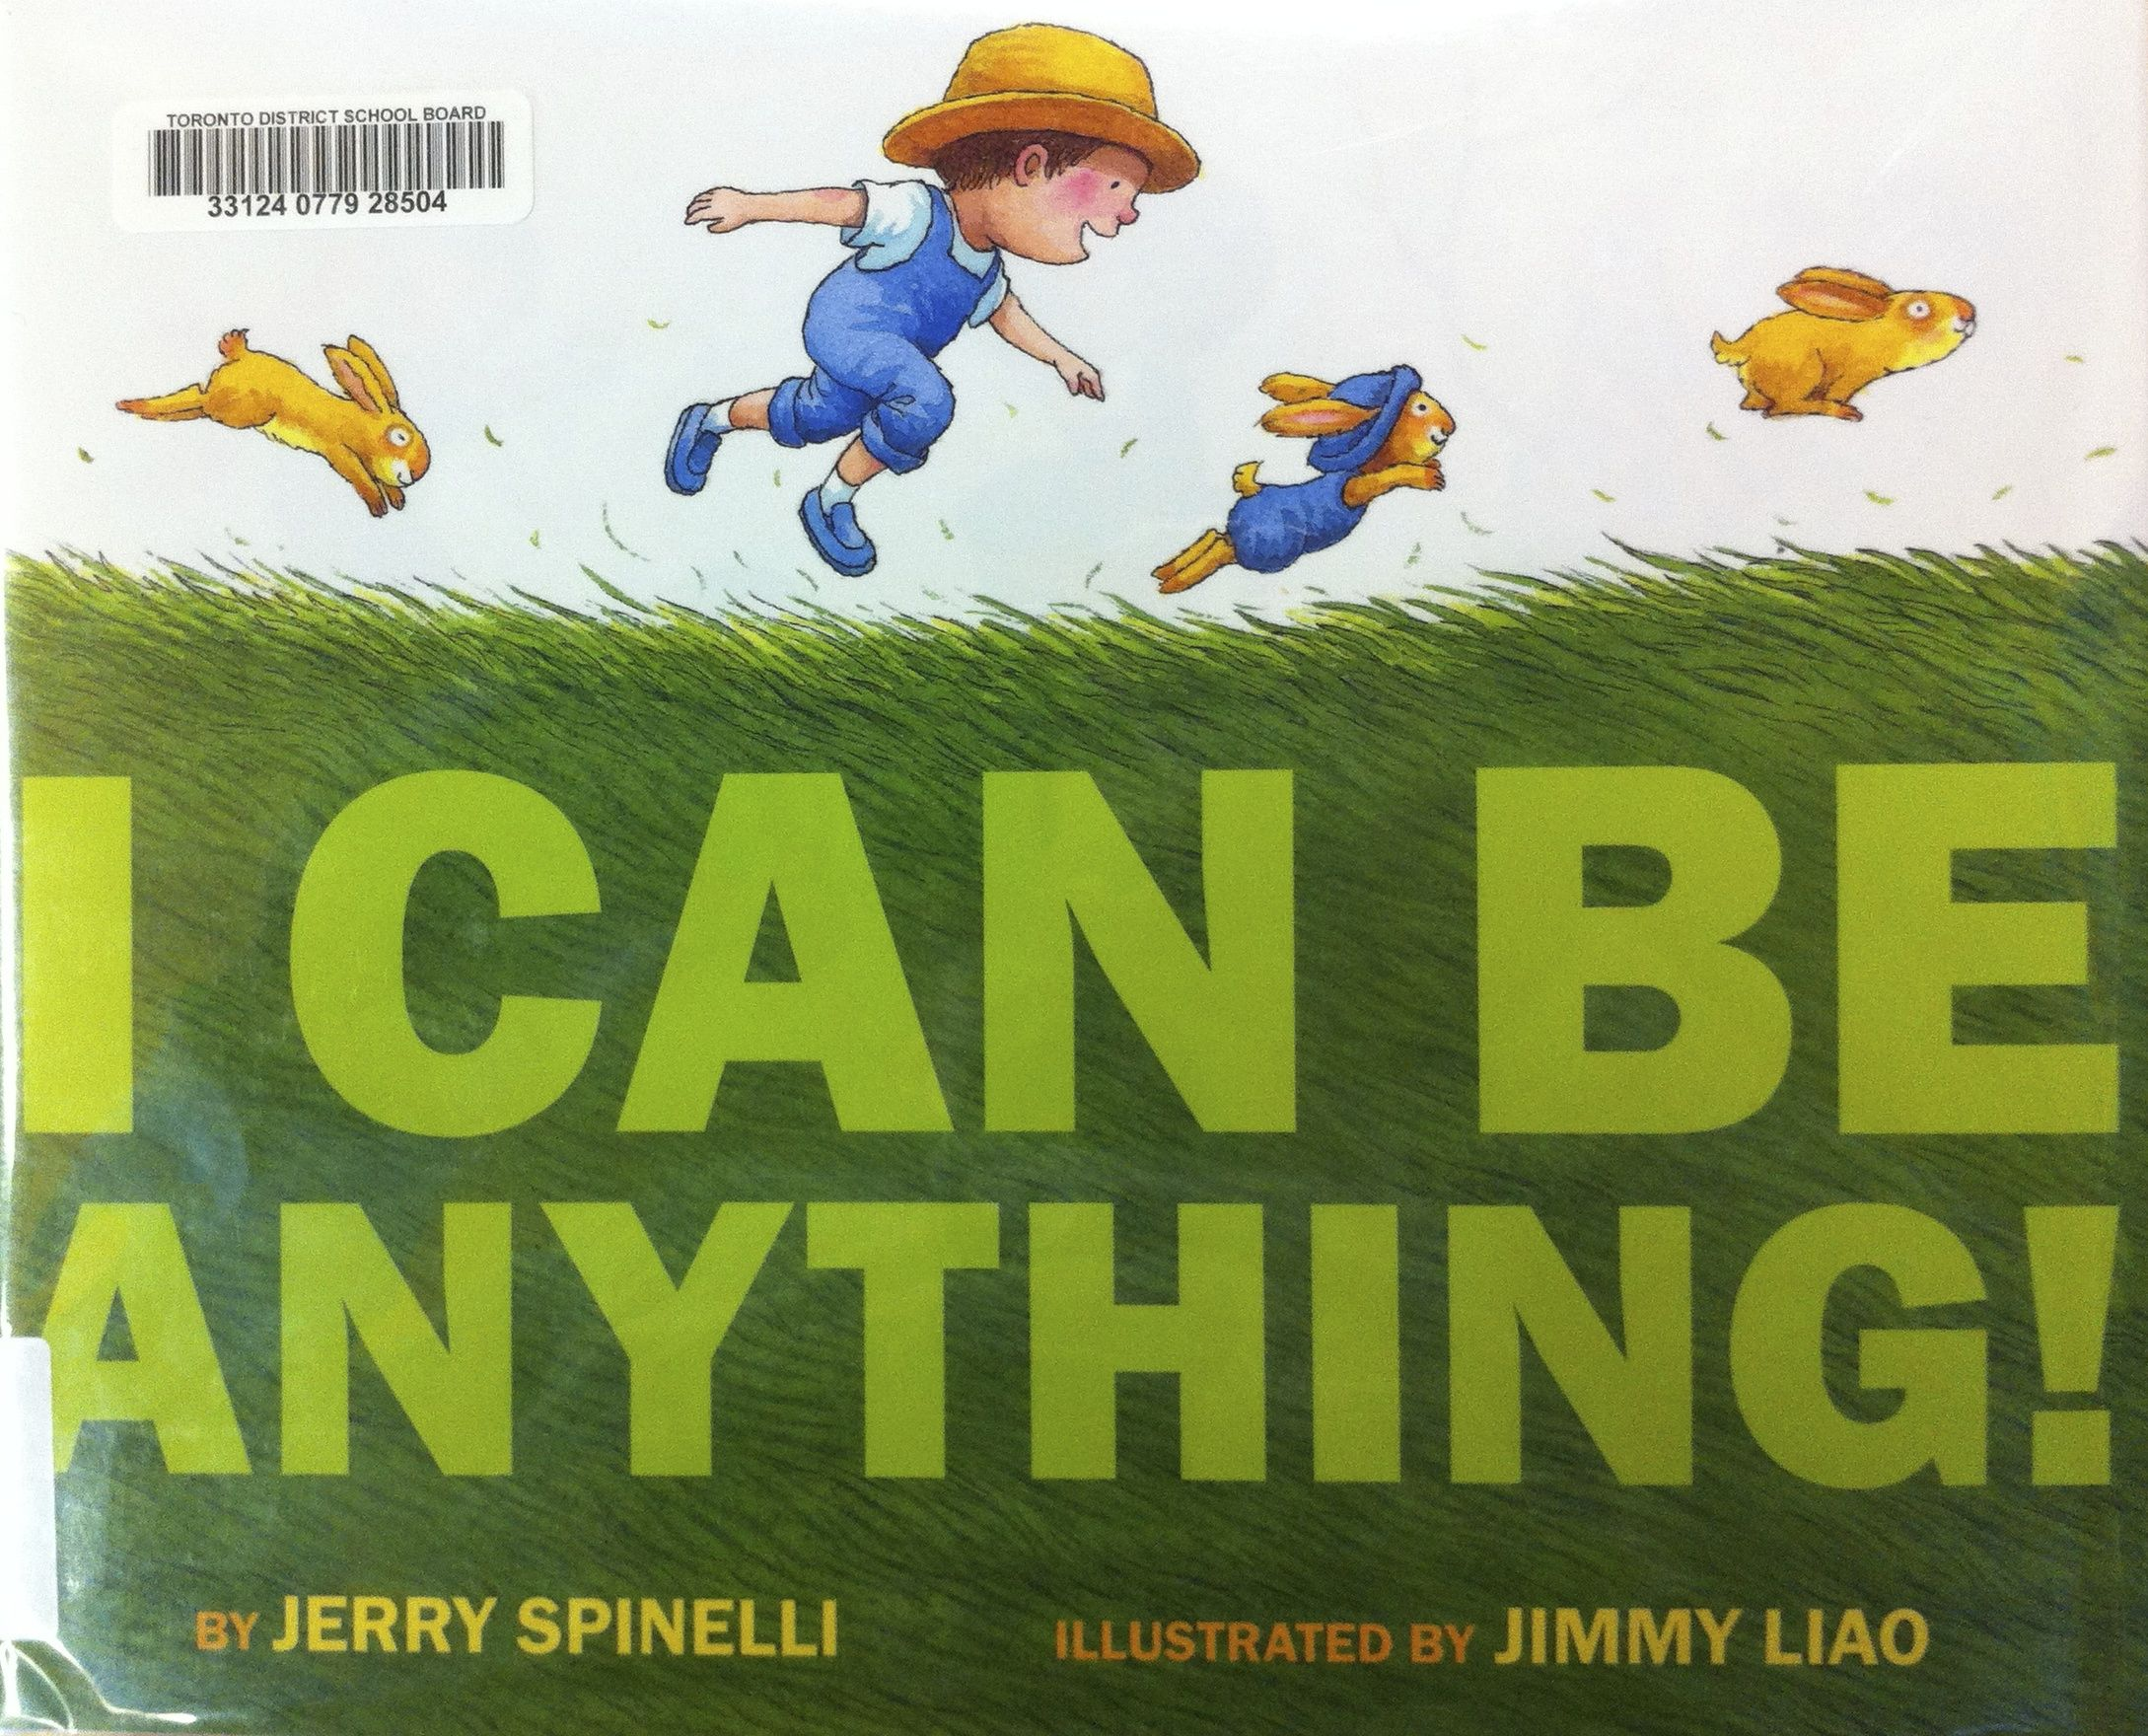 Spinelli Sedie ~ I can be anything by jerry spinelli illustrated by jimmy liao e